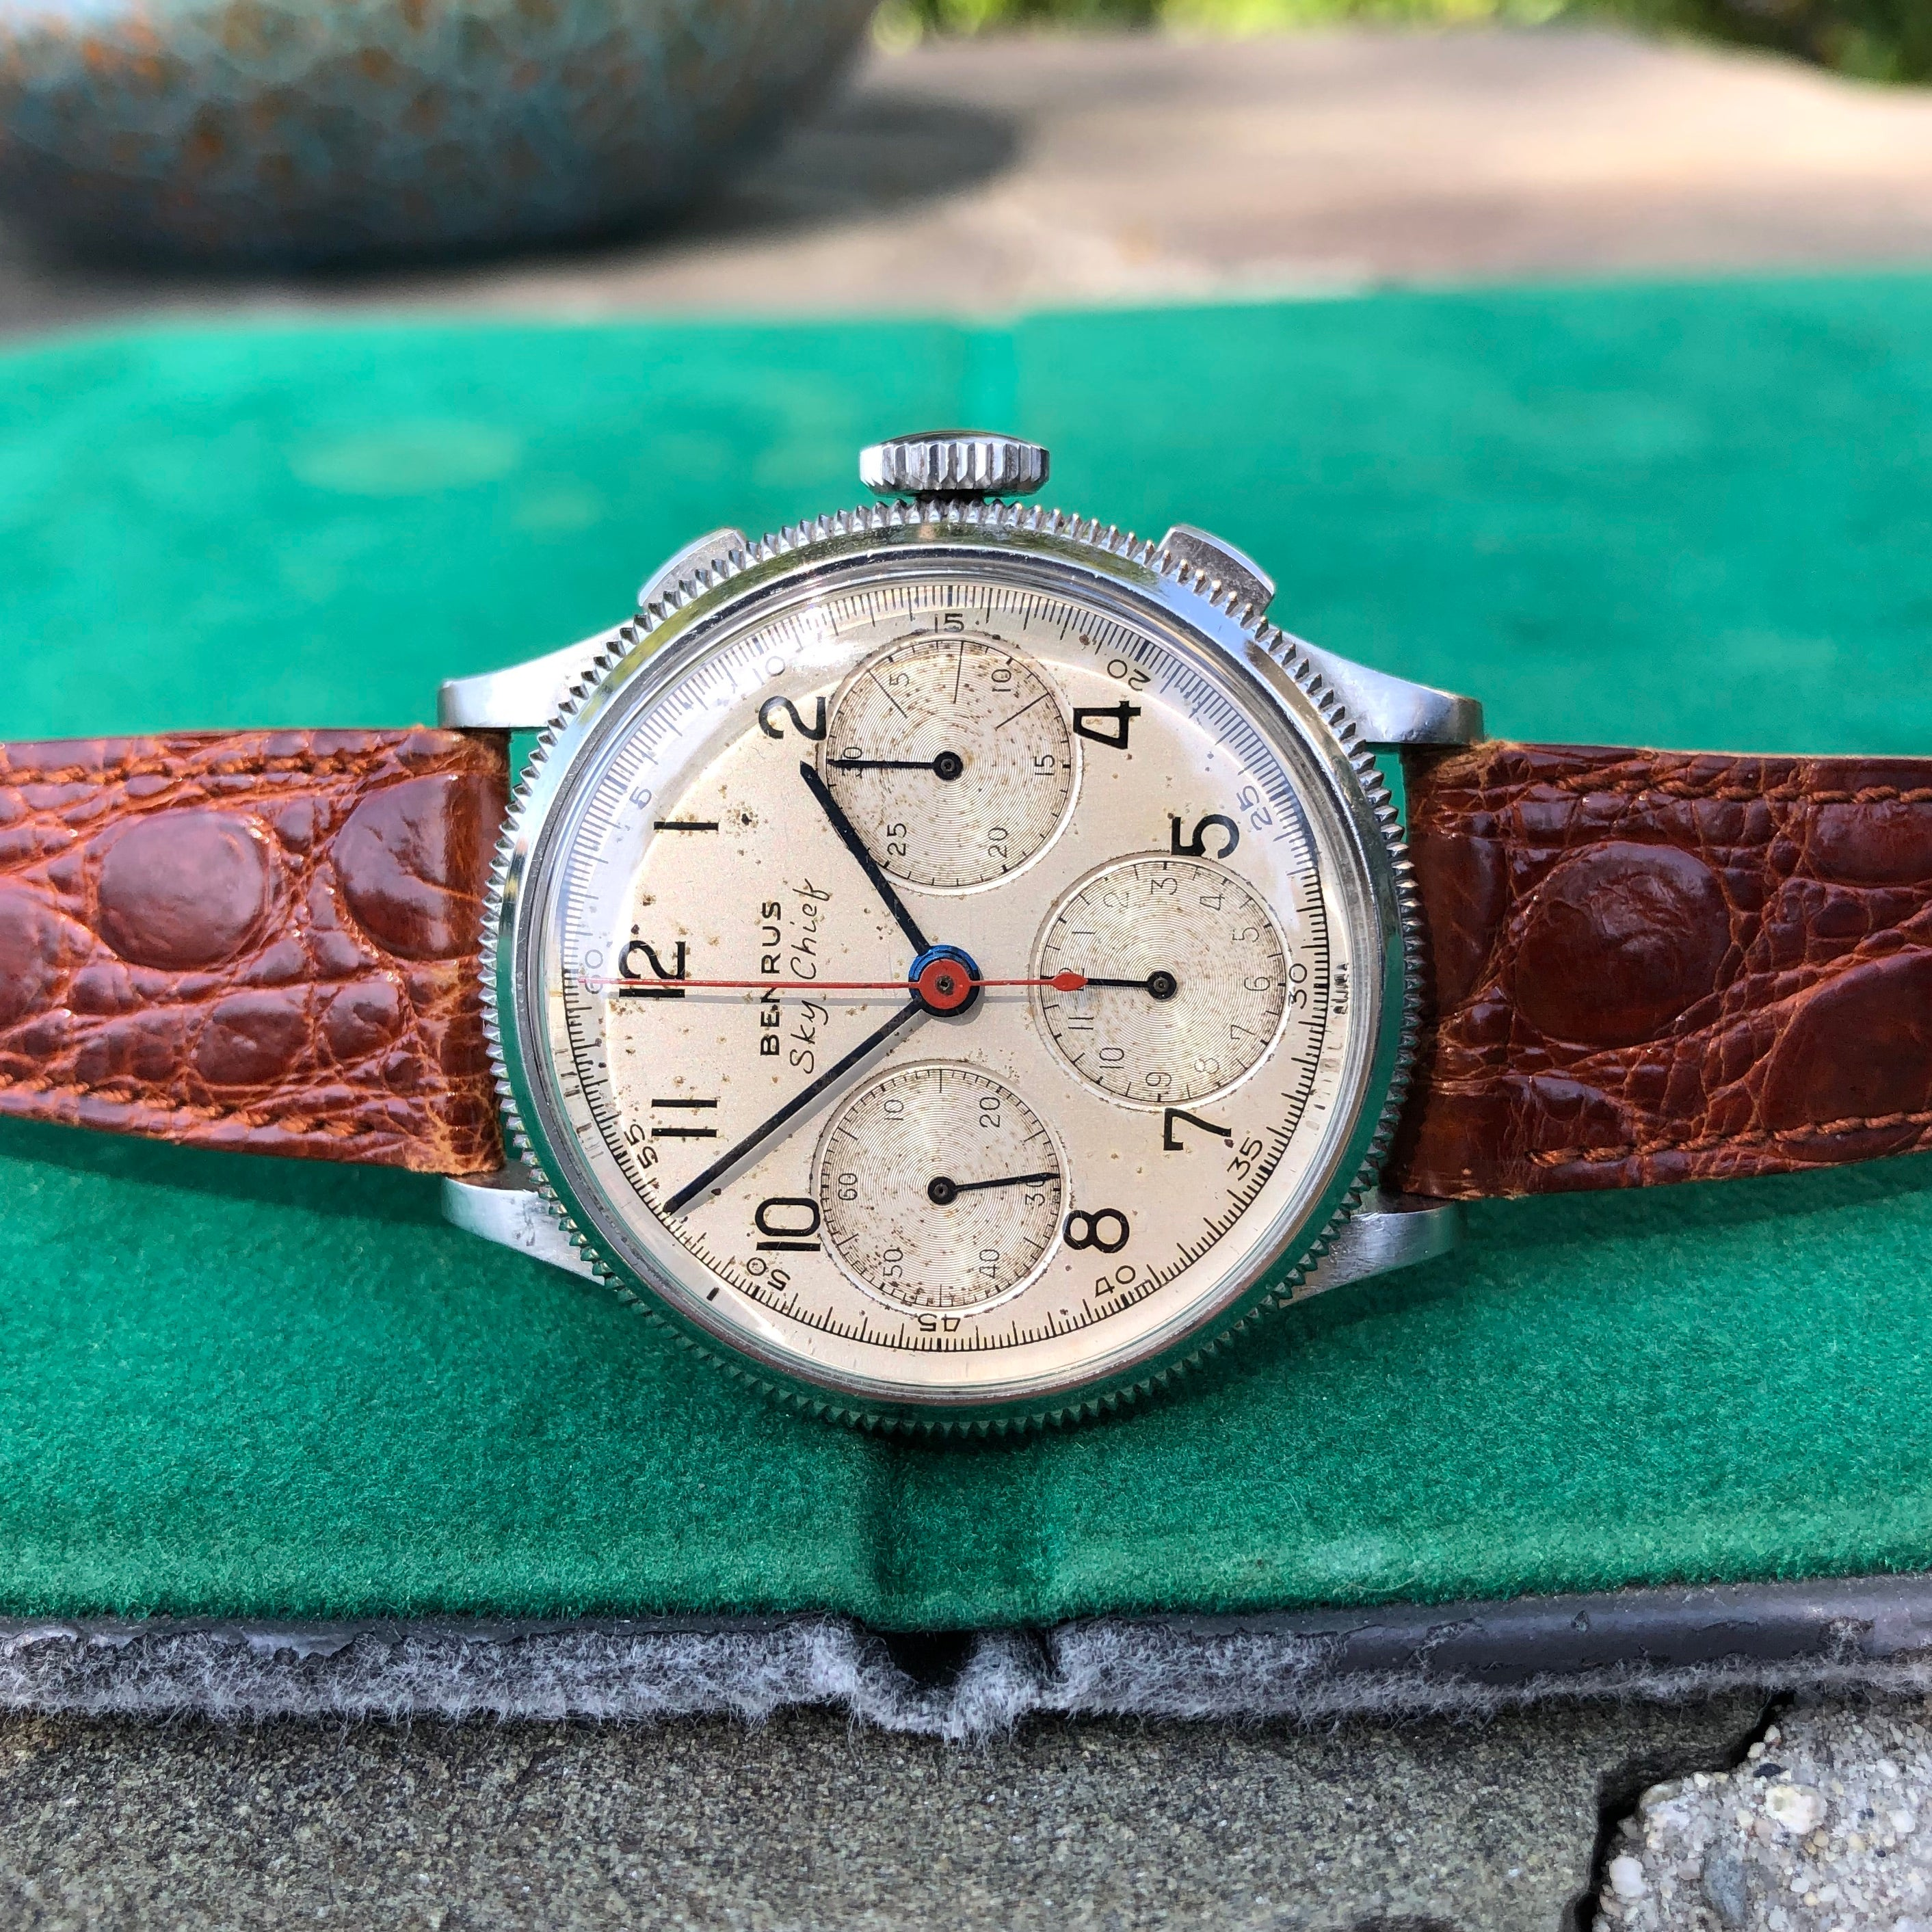 Vintage Benrus Sky Chief Chronograph Valjoux 71 Stainless Steel Wristwatch - Hashtag Watch Company